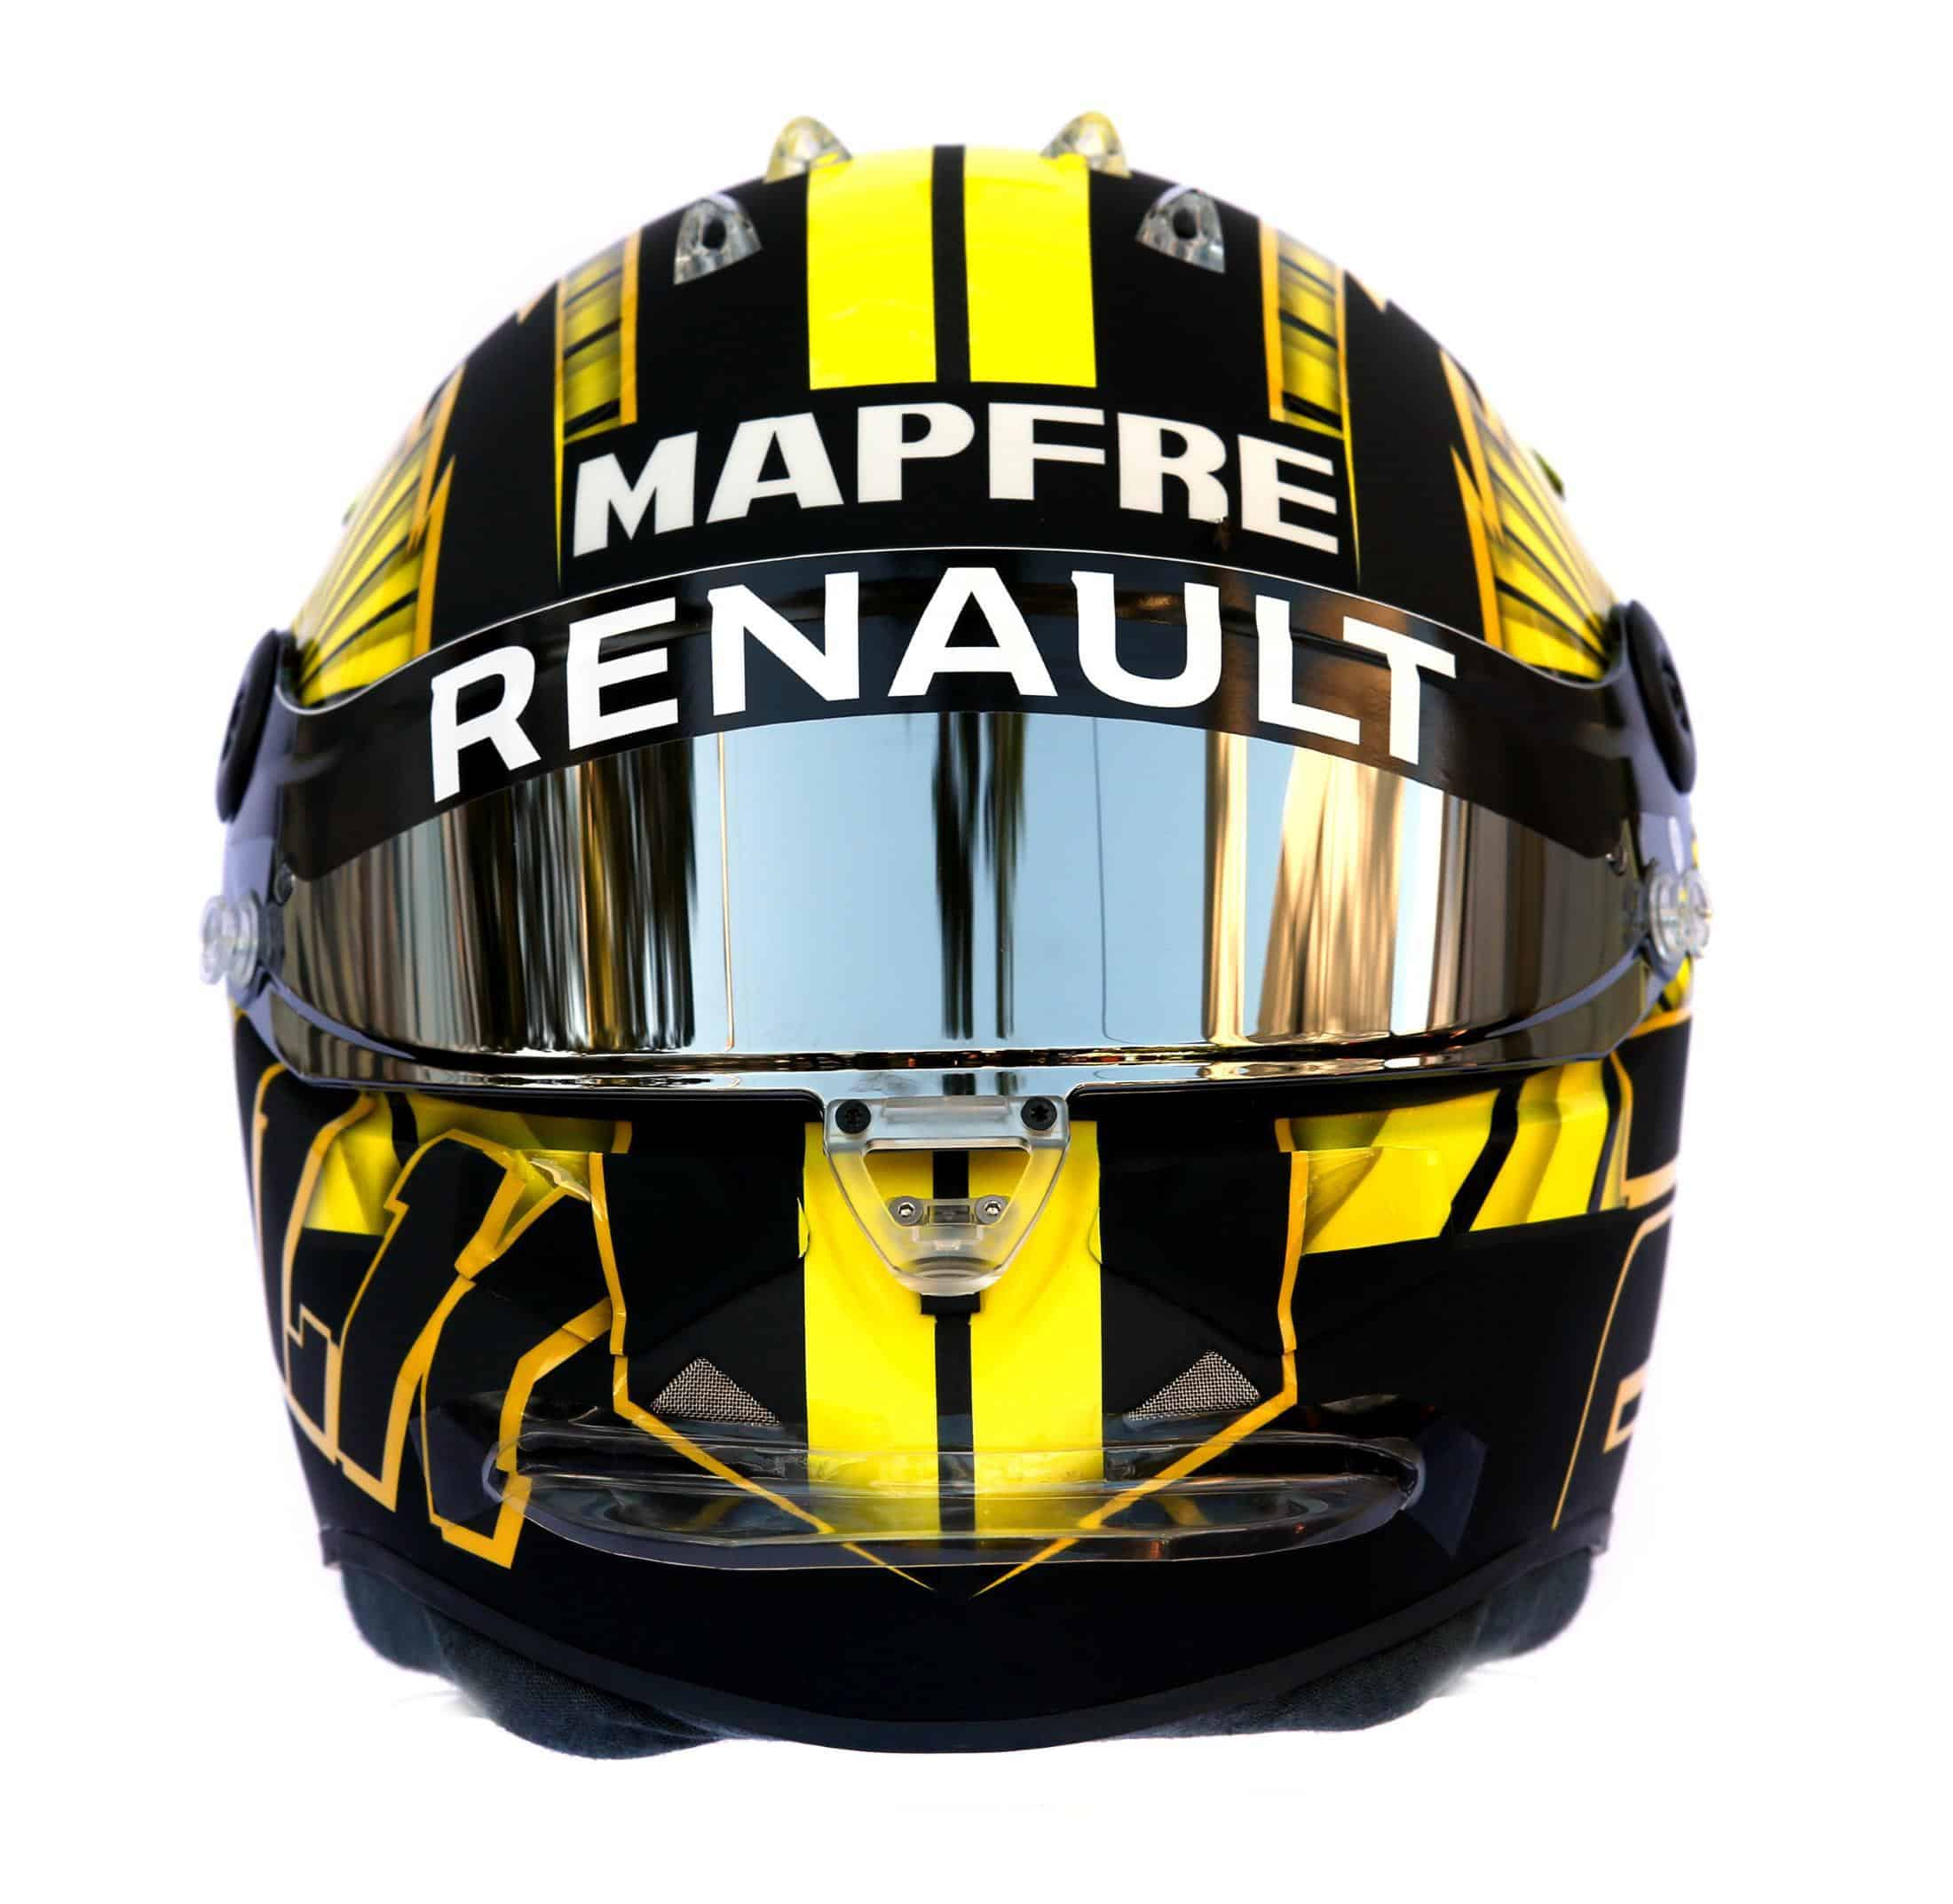 2019 F1 Nico Hulkenberg Renault helmet front Photo Renault Edited by MAXF1net